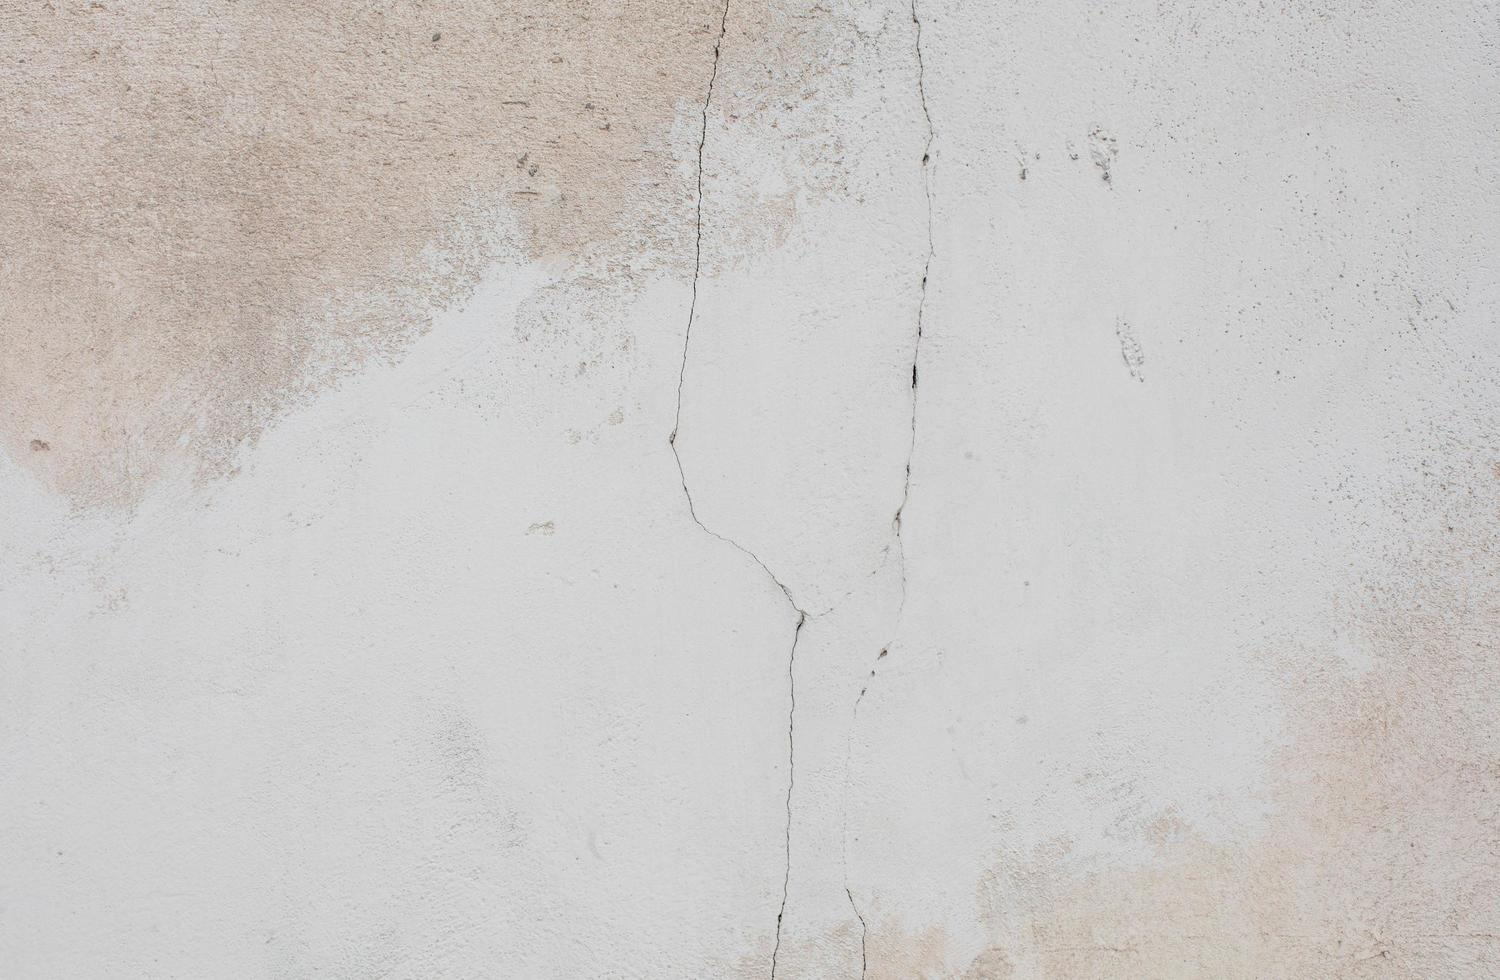 Abstract concrete wall texture photo